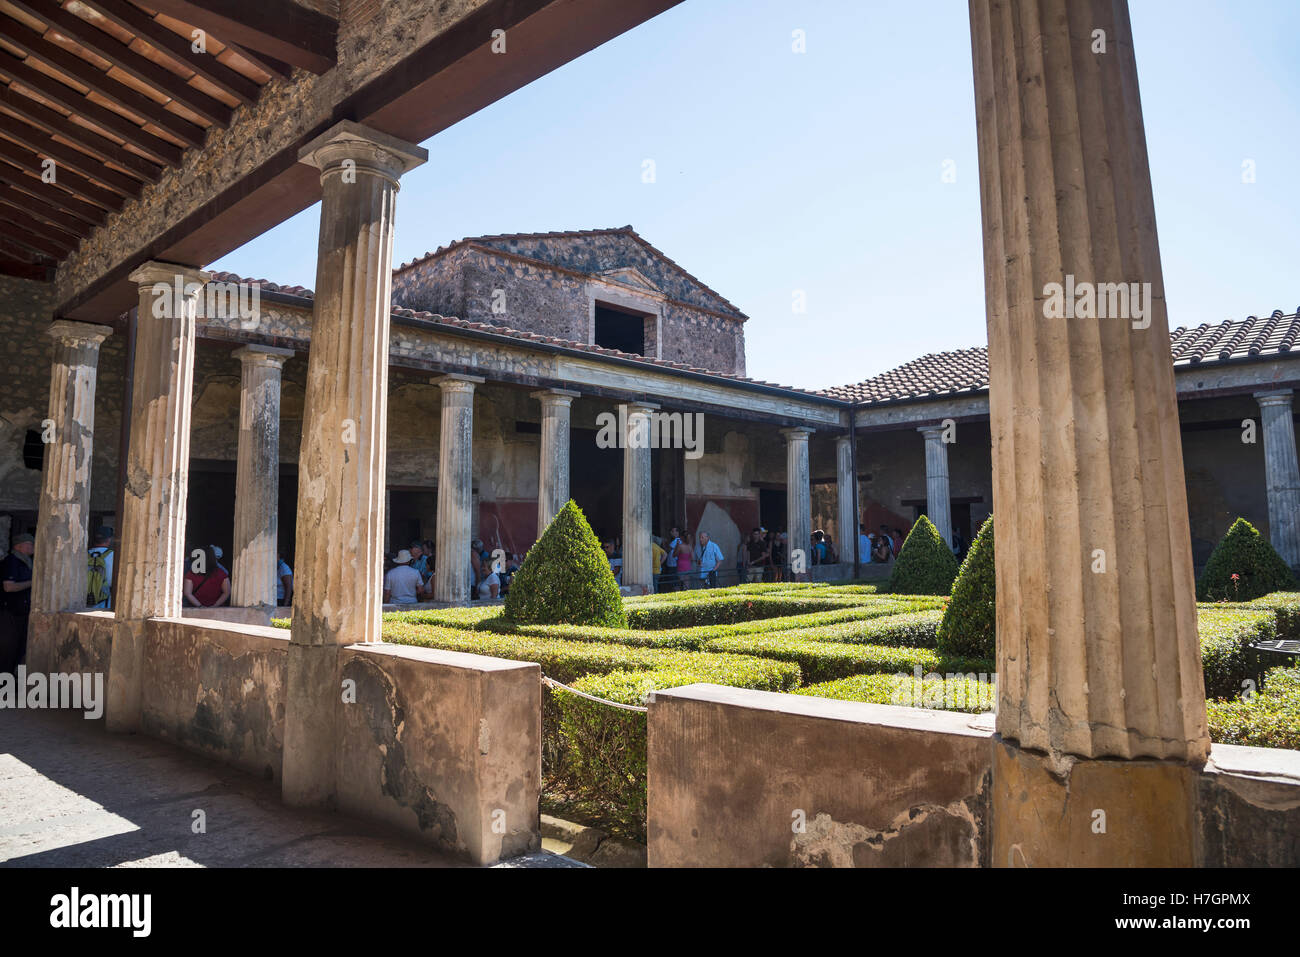 Arcaded Court of the  Roman house in Pompeii,, archaeological site, Campania region, Italy - Stock Image